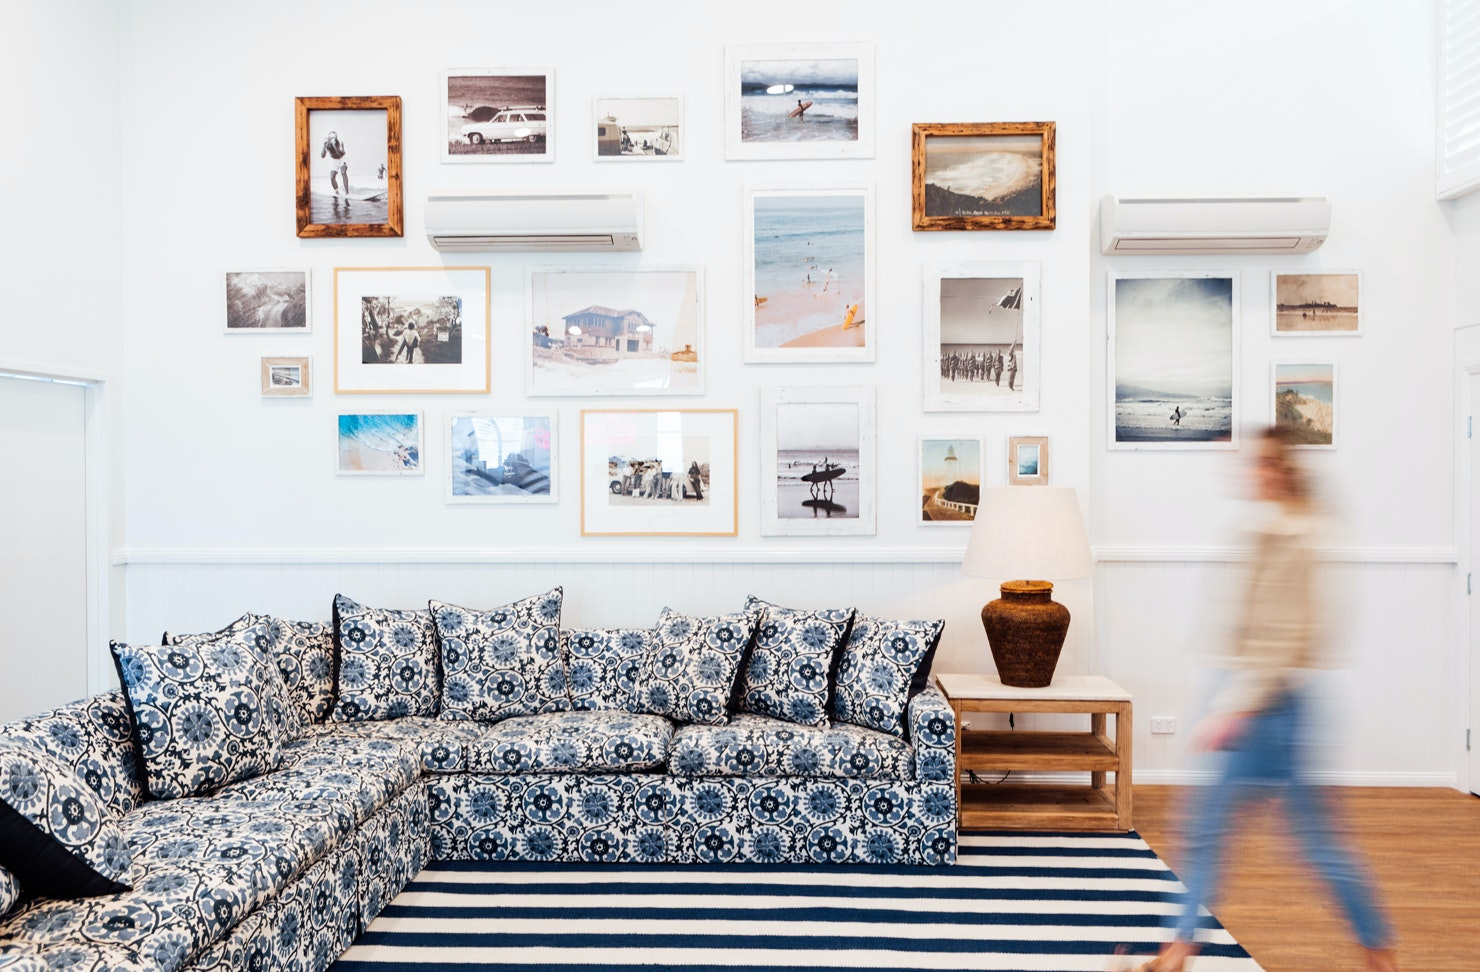 A blue and white l-shape couch sits in front of a gallery-style wall in a Byron Bay hostel.